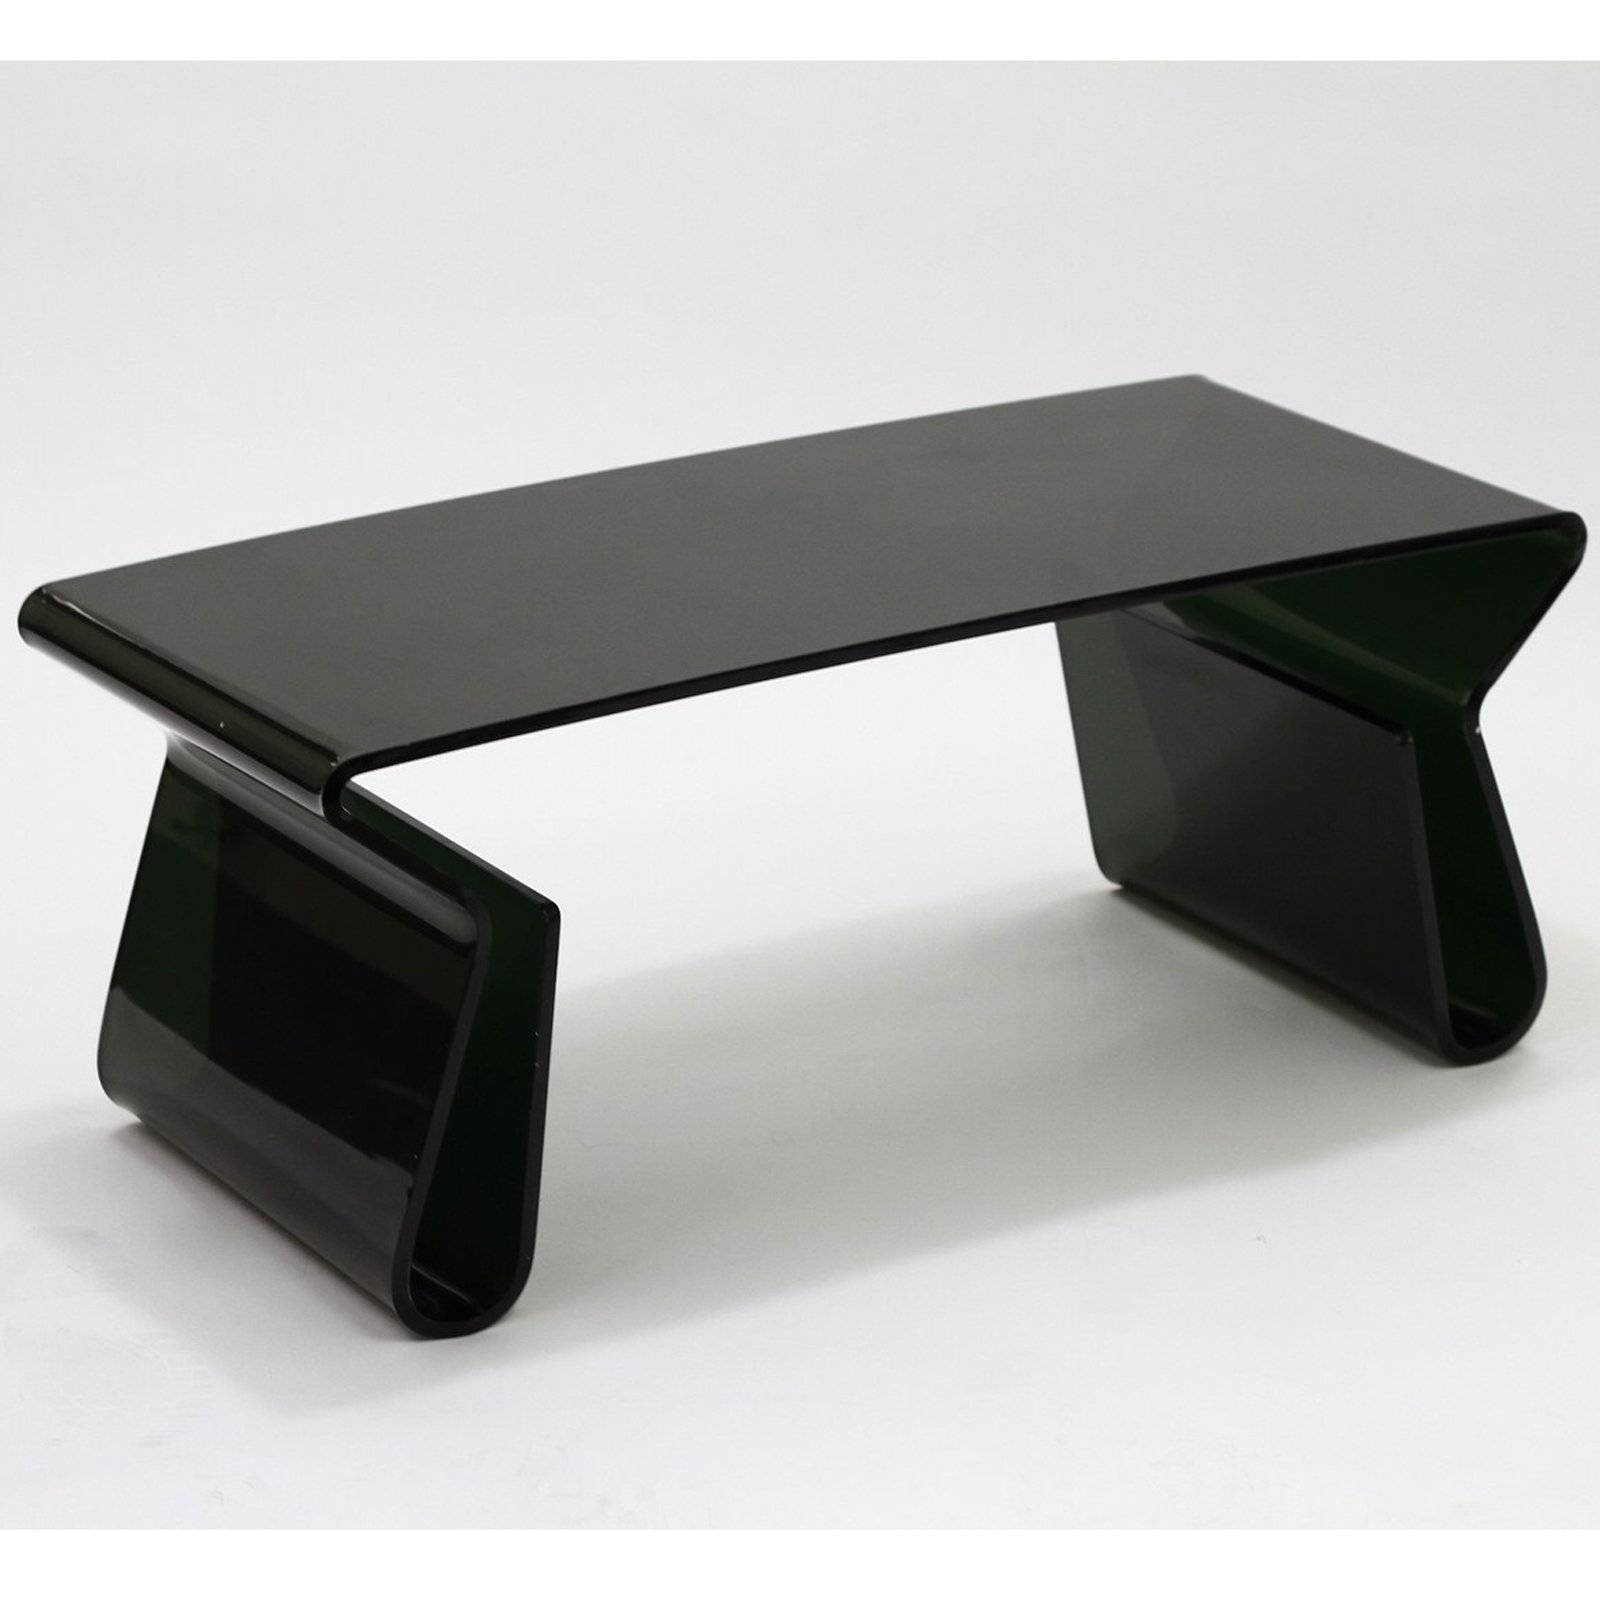 Marvelous Modway Rectangle Black Acrylic Coffee Table With Magazine Holder With  Regard To Acrylic Coffee Tables With